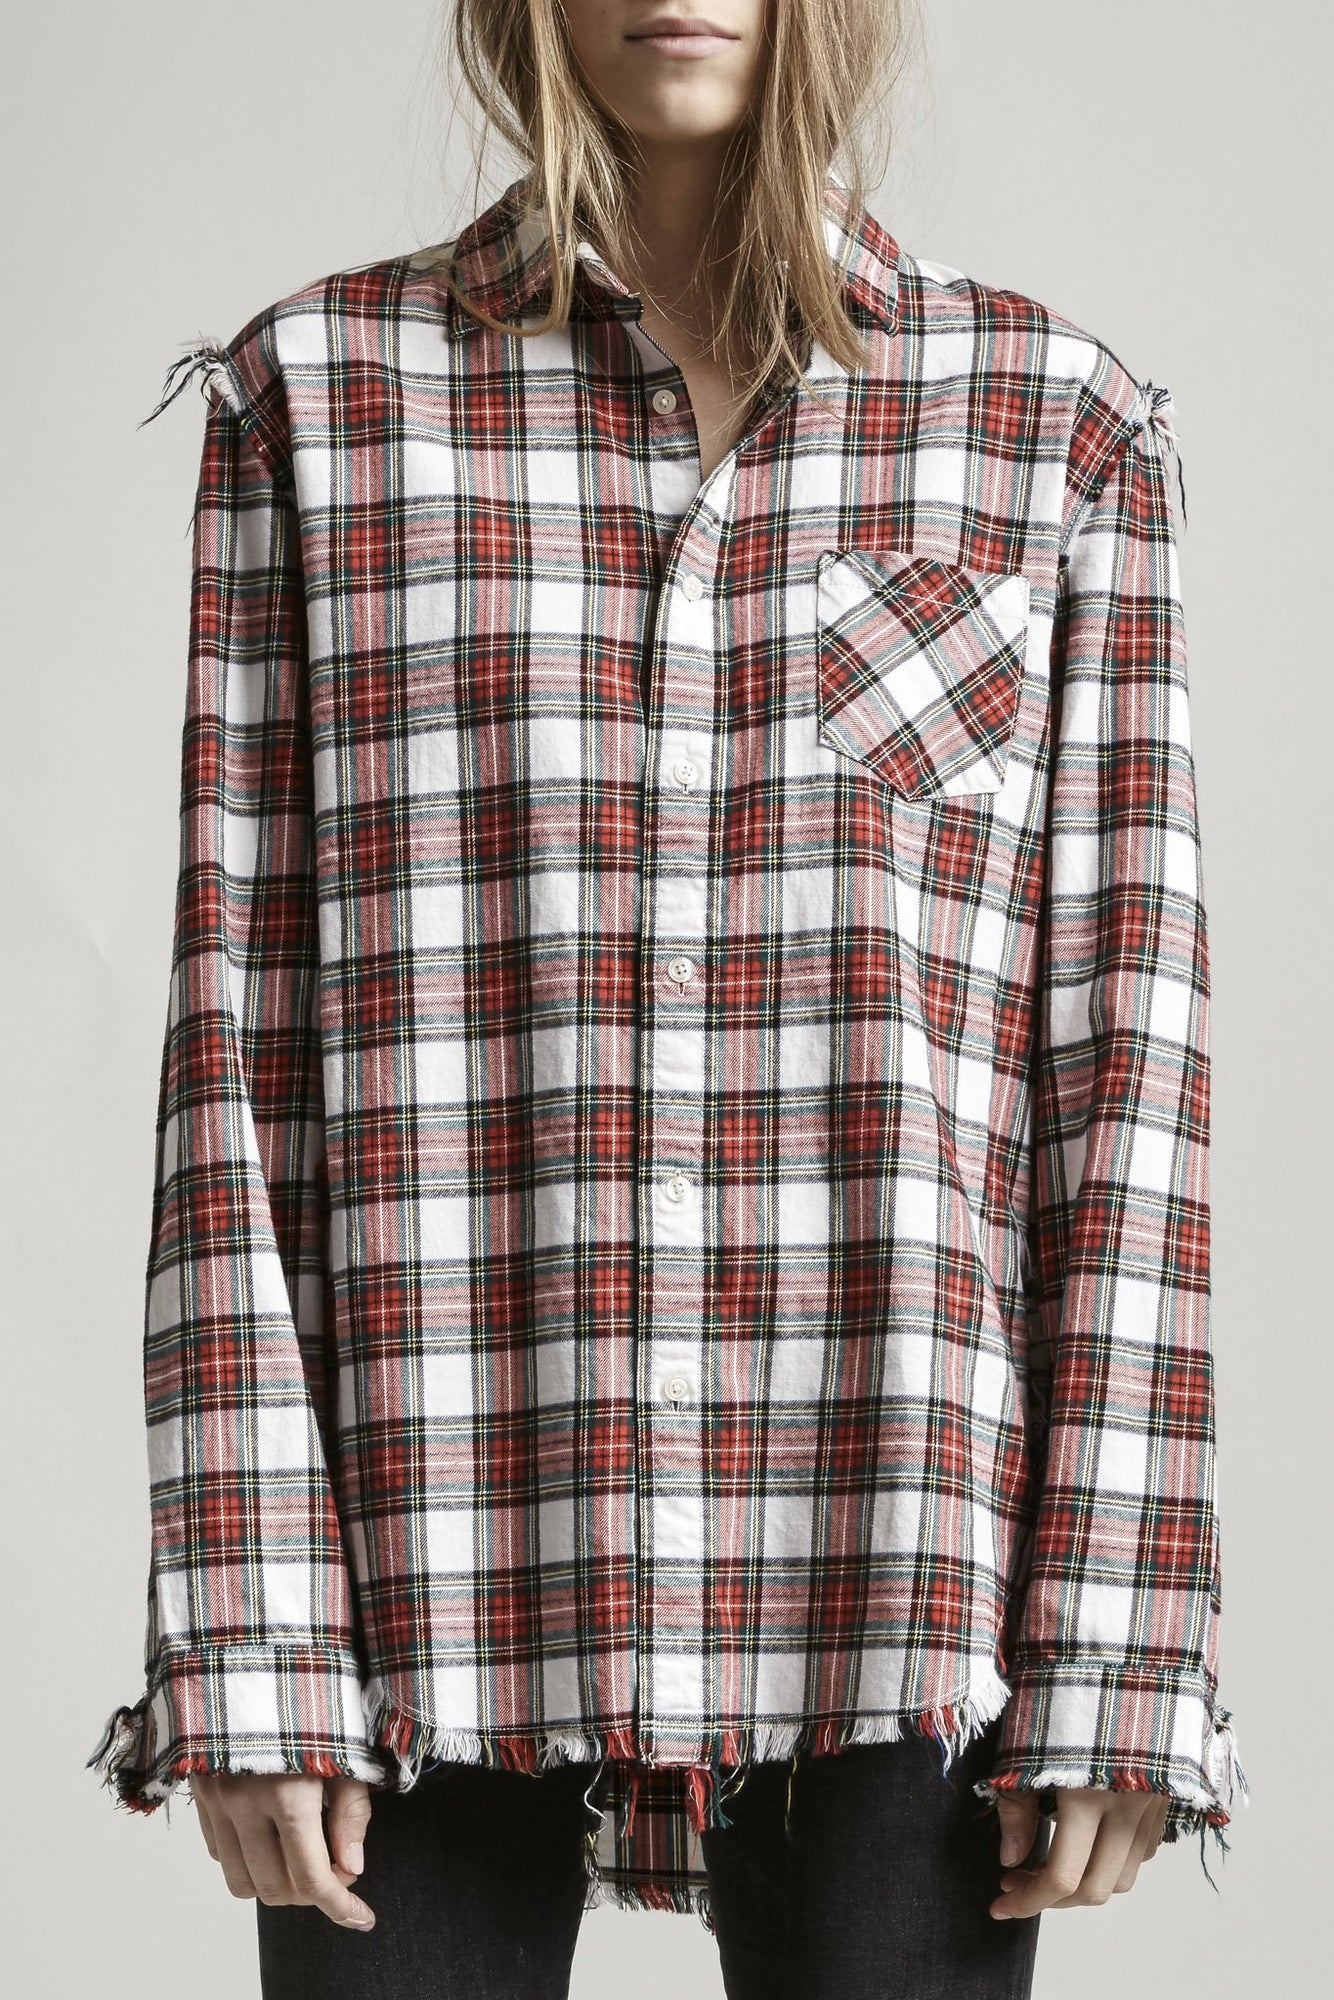 Shredded Seam Shirt - Ecru/Red Plaid